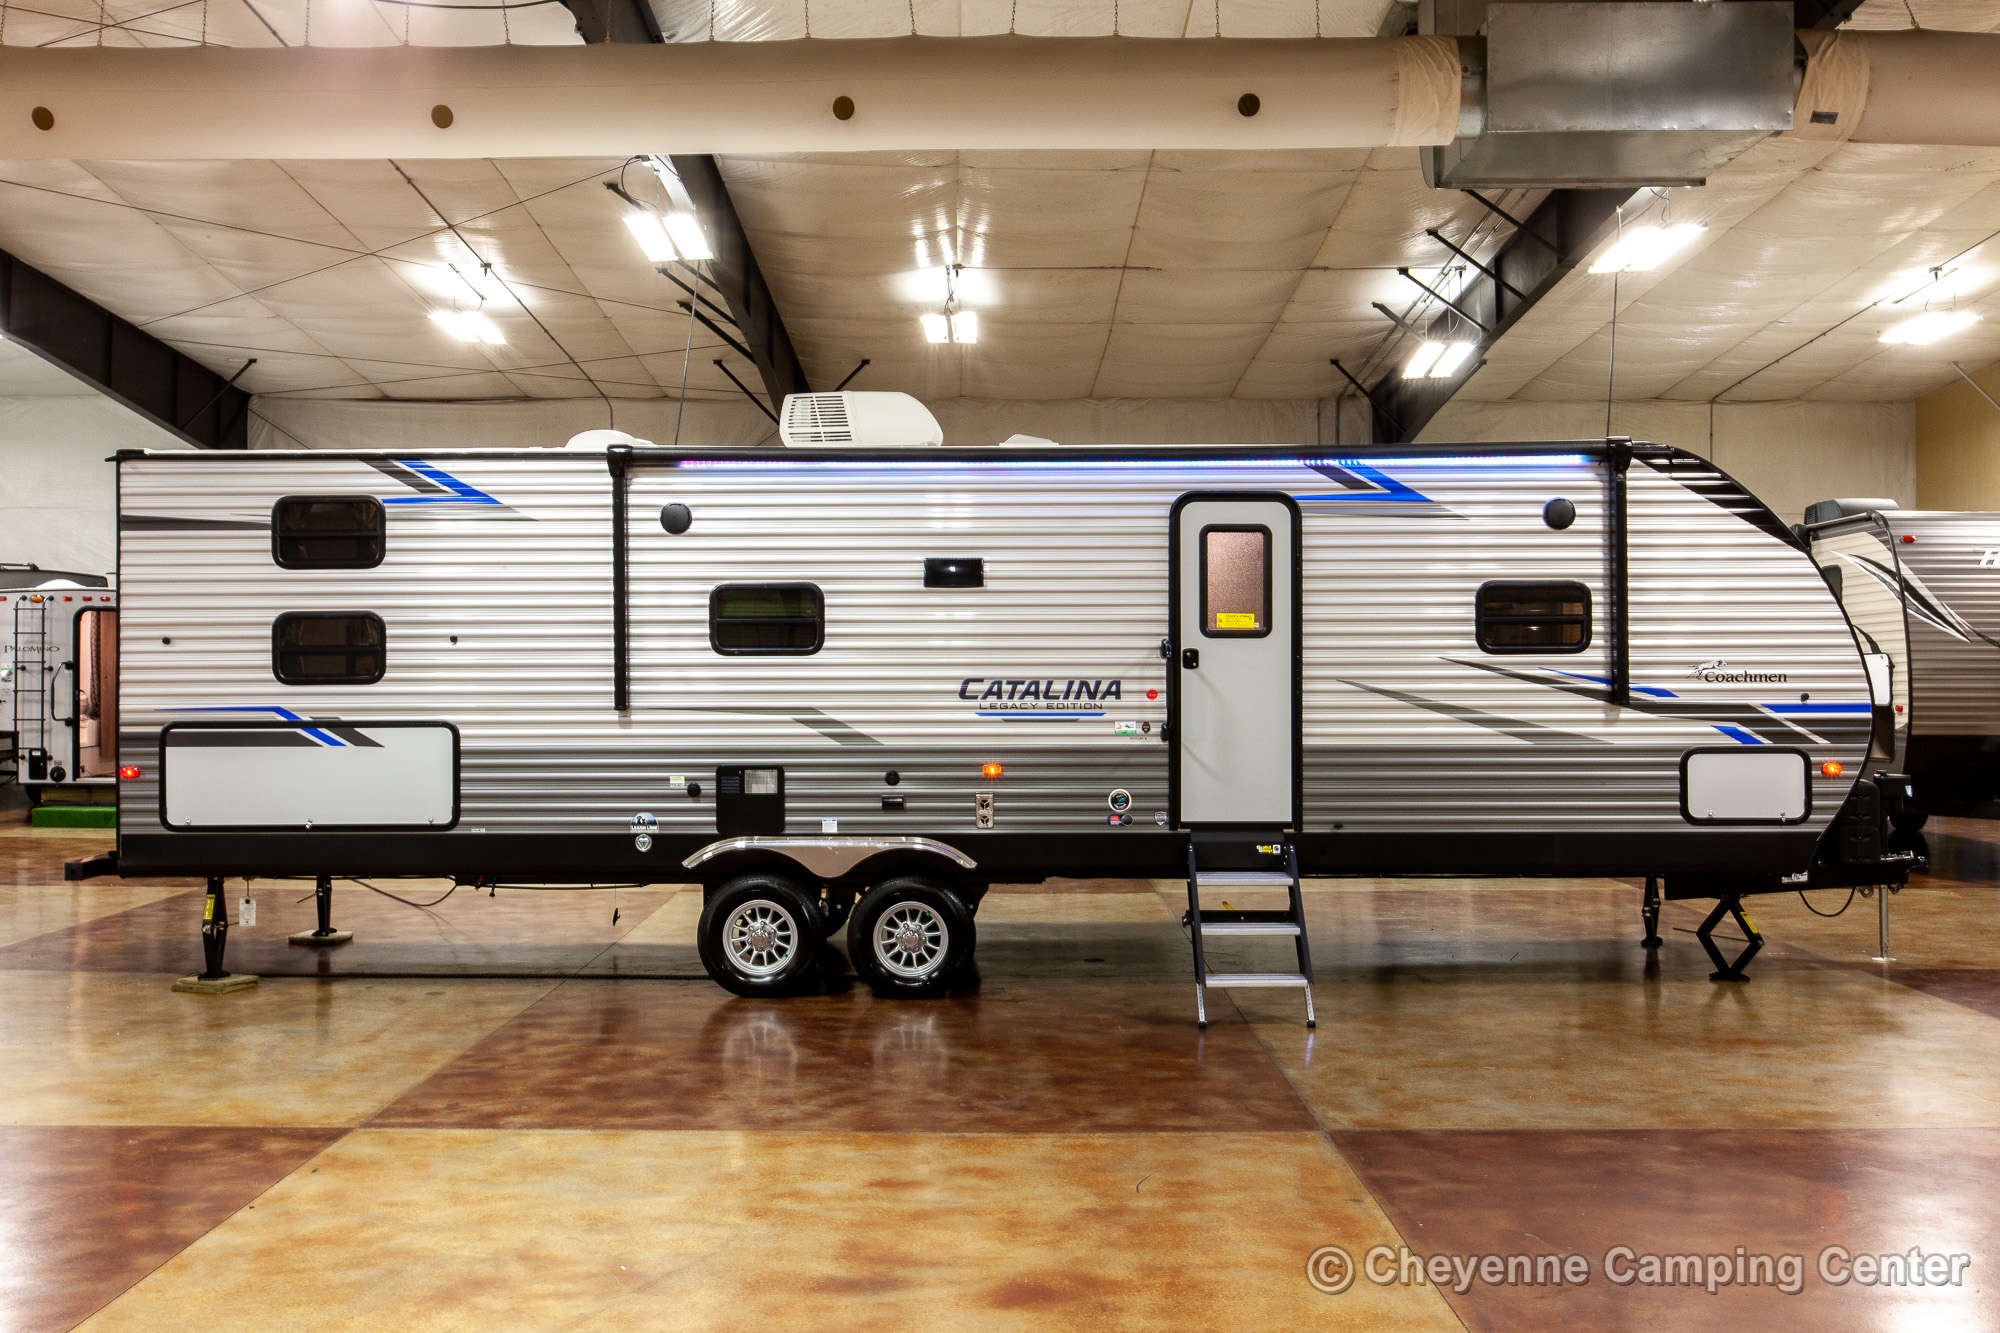 2021 Coachmen Catalina Legacy Edition 303QBCK Bunkhouse Travel Trailer Exterior Image